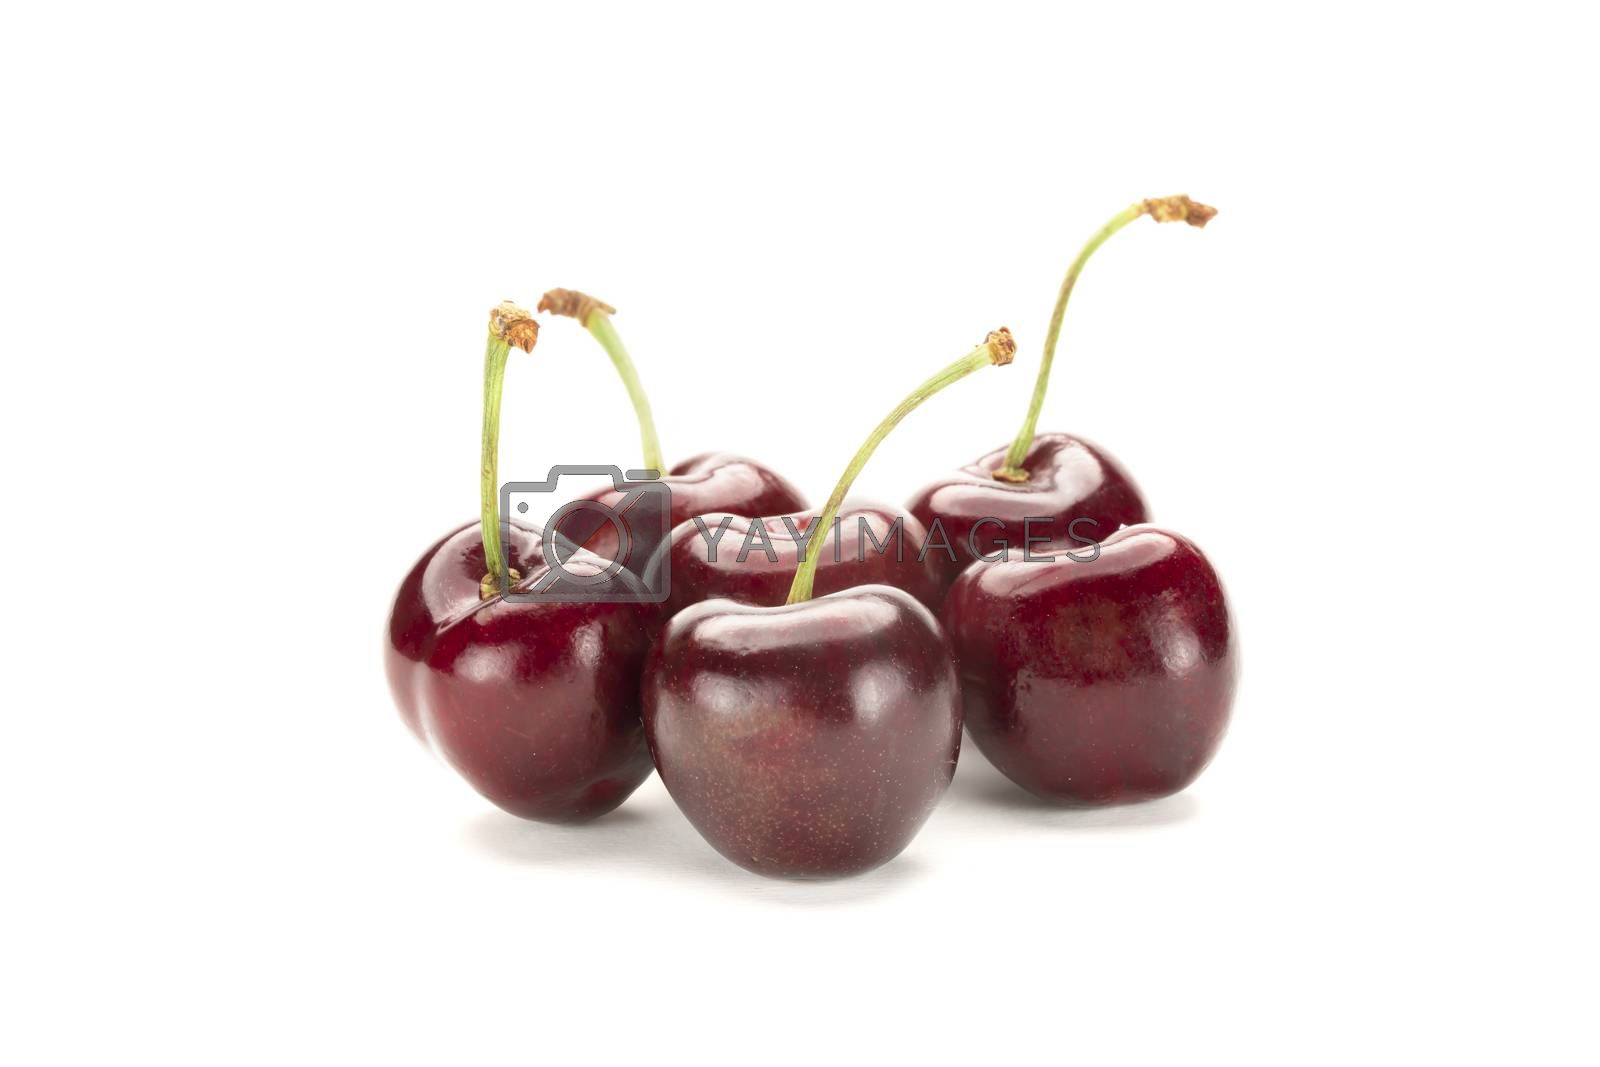 A bunch of ripe red cherries. Isolated on white background.